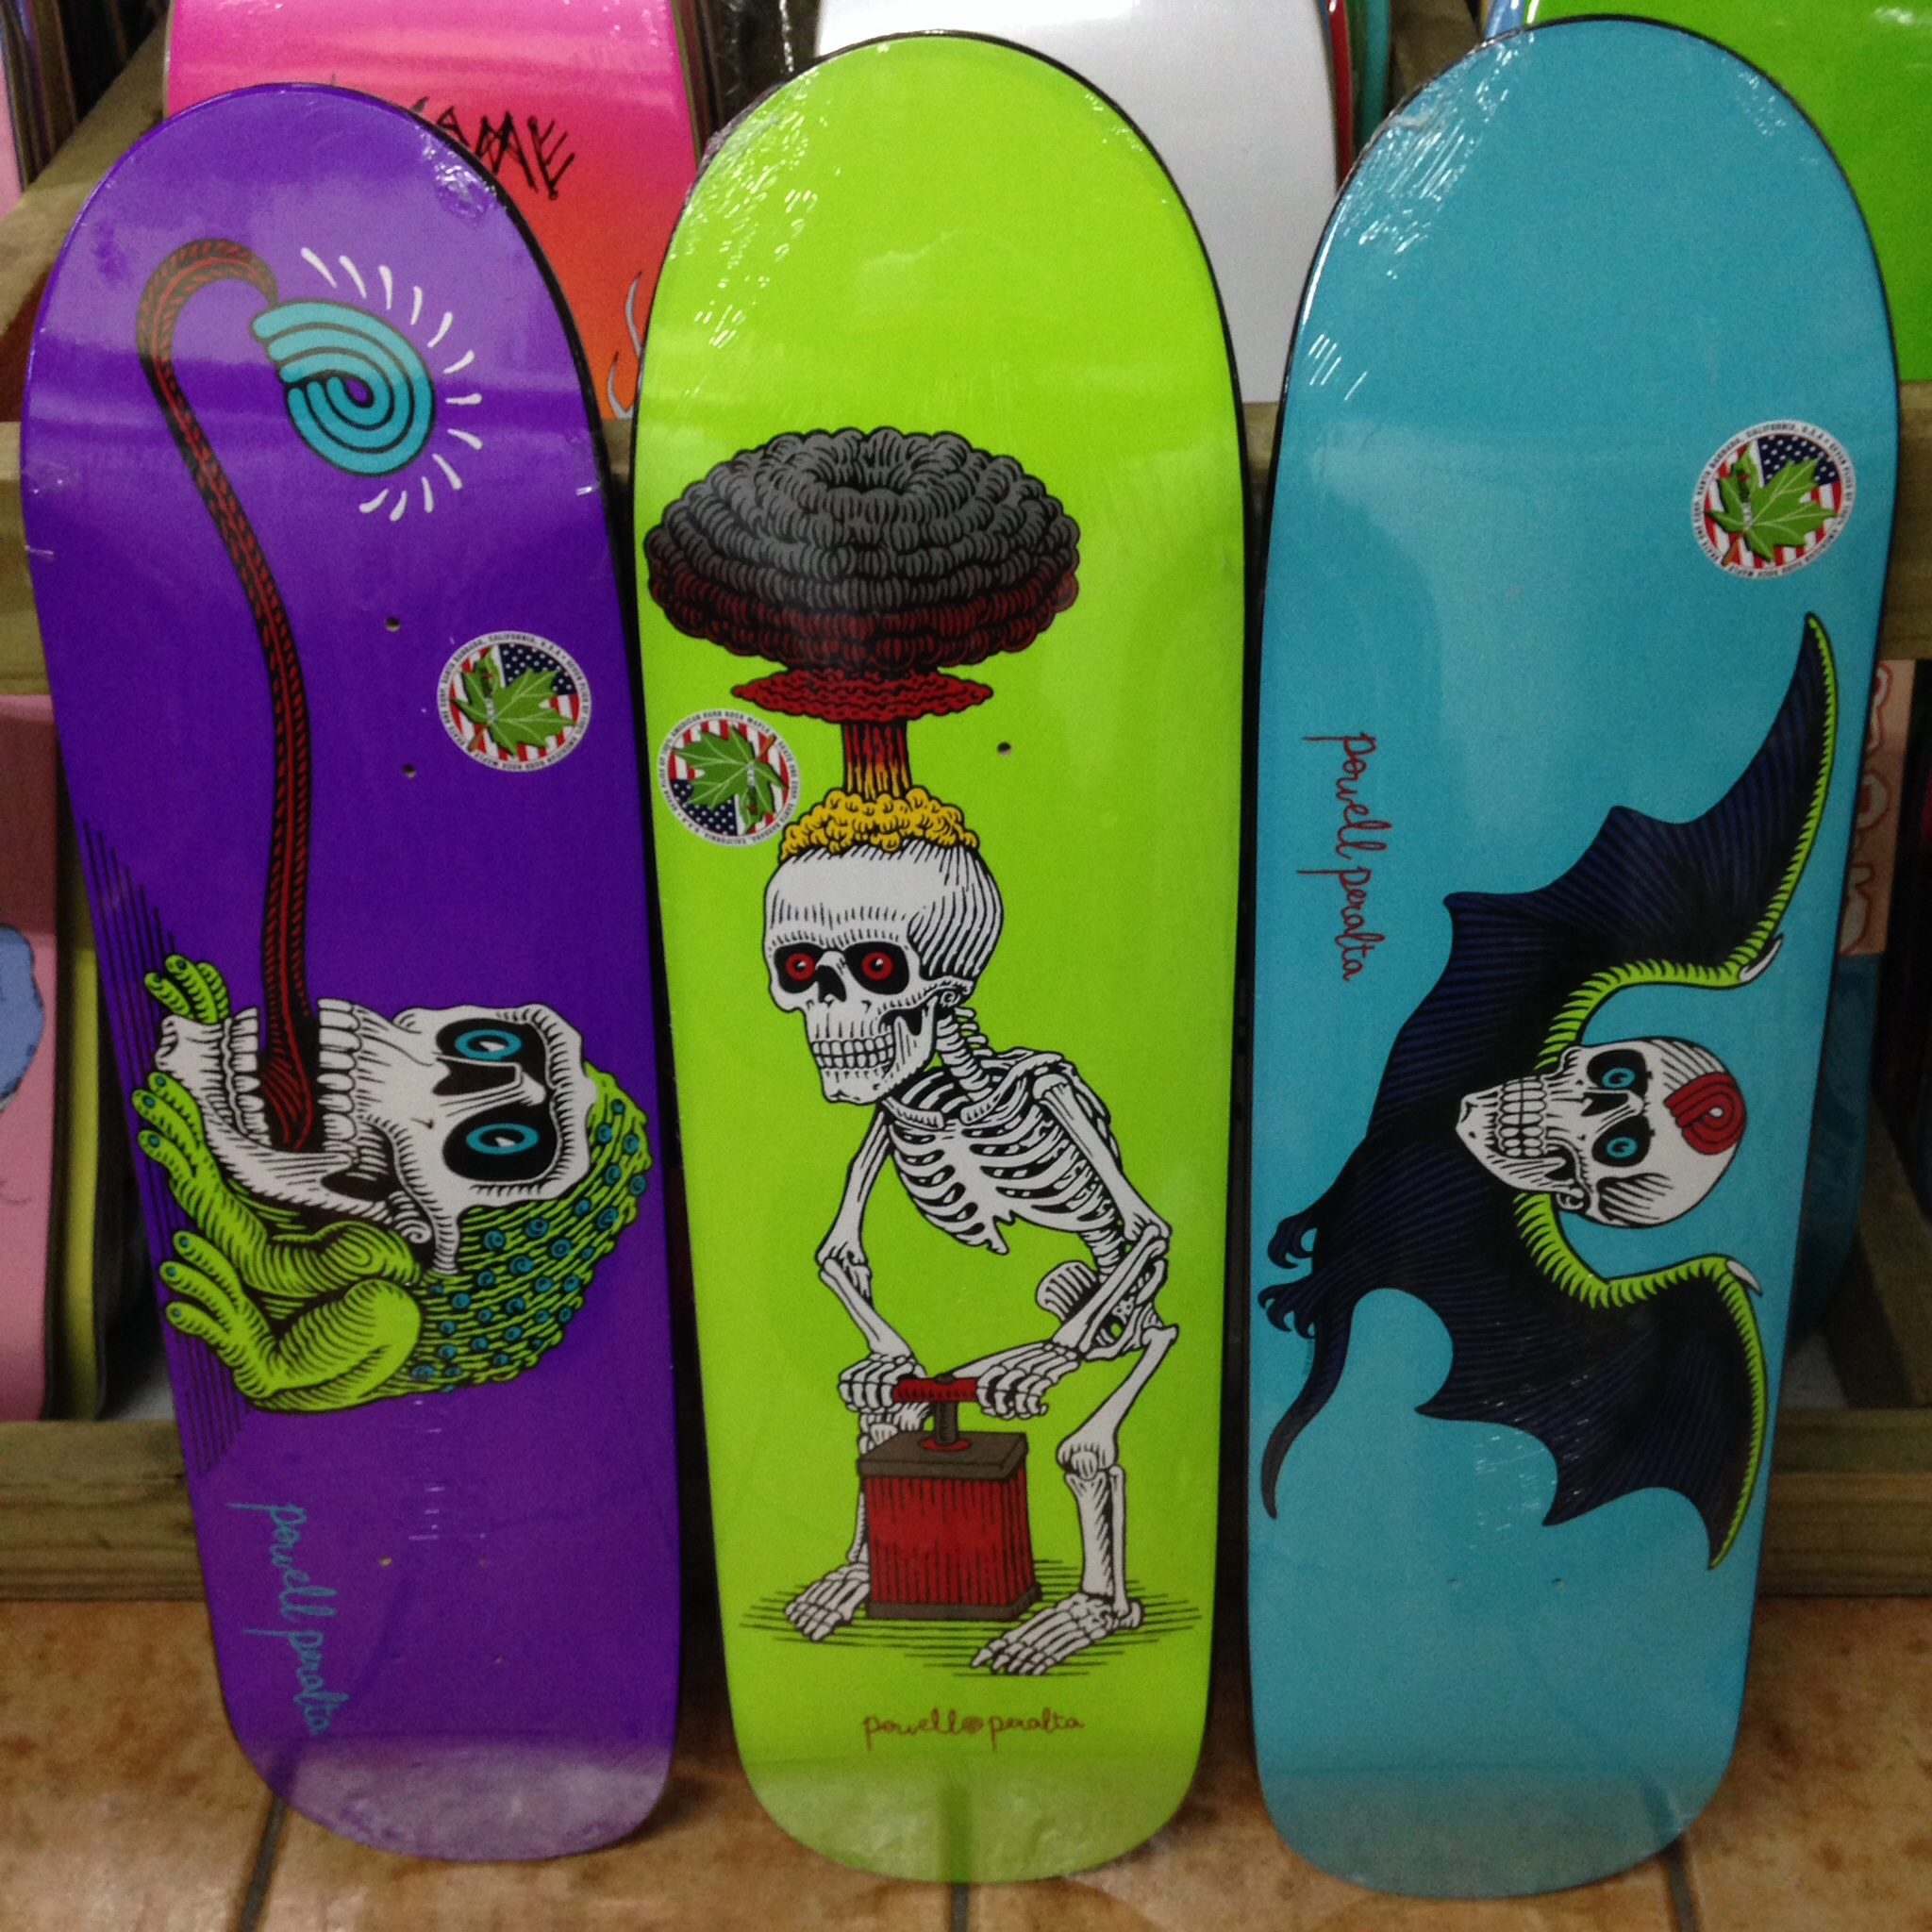 """All new Powell-Peralta Popsicle stick decks, with artwork by VCJ! Frog skull (8 x 31.25, n:6.5"""", wb:14"""", t: 6.5""""), Explode (8.38 x 31.7, n: 6.75, wb: 14.25"""", t: 6.5), bat skull (8.25 x 31.6, n: 6.75, wb: 14.25, t: 6.5)"""